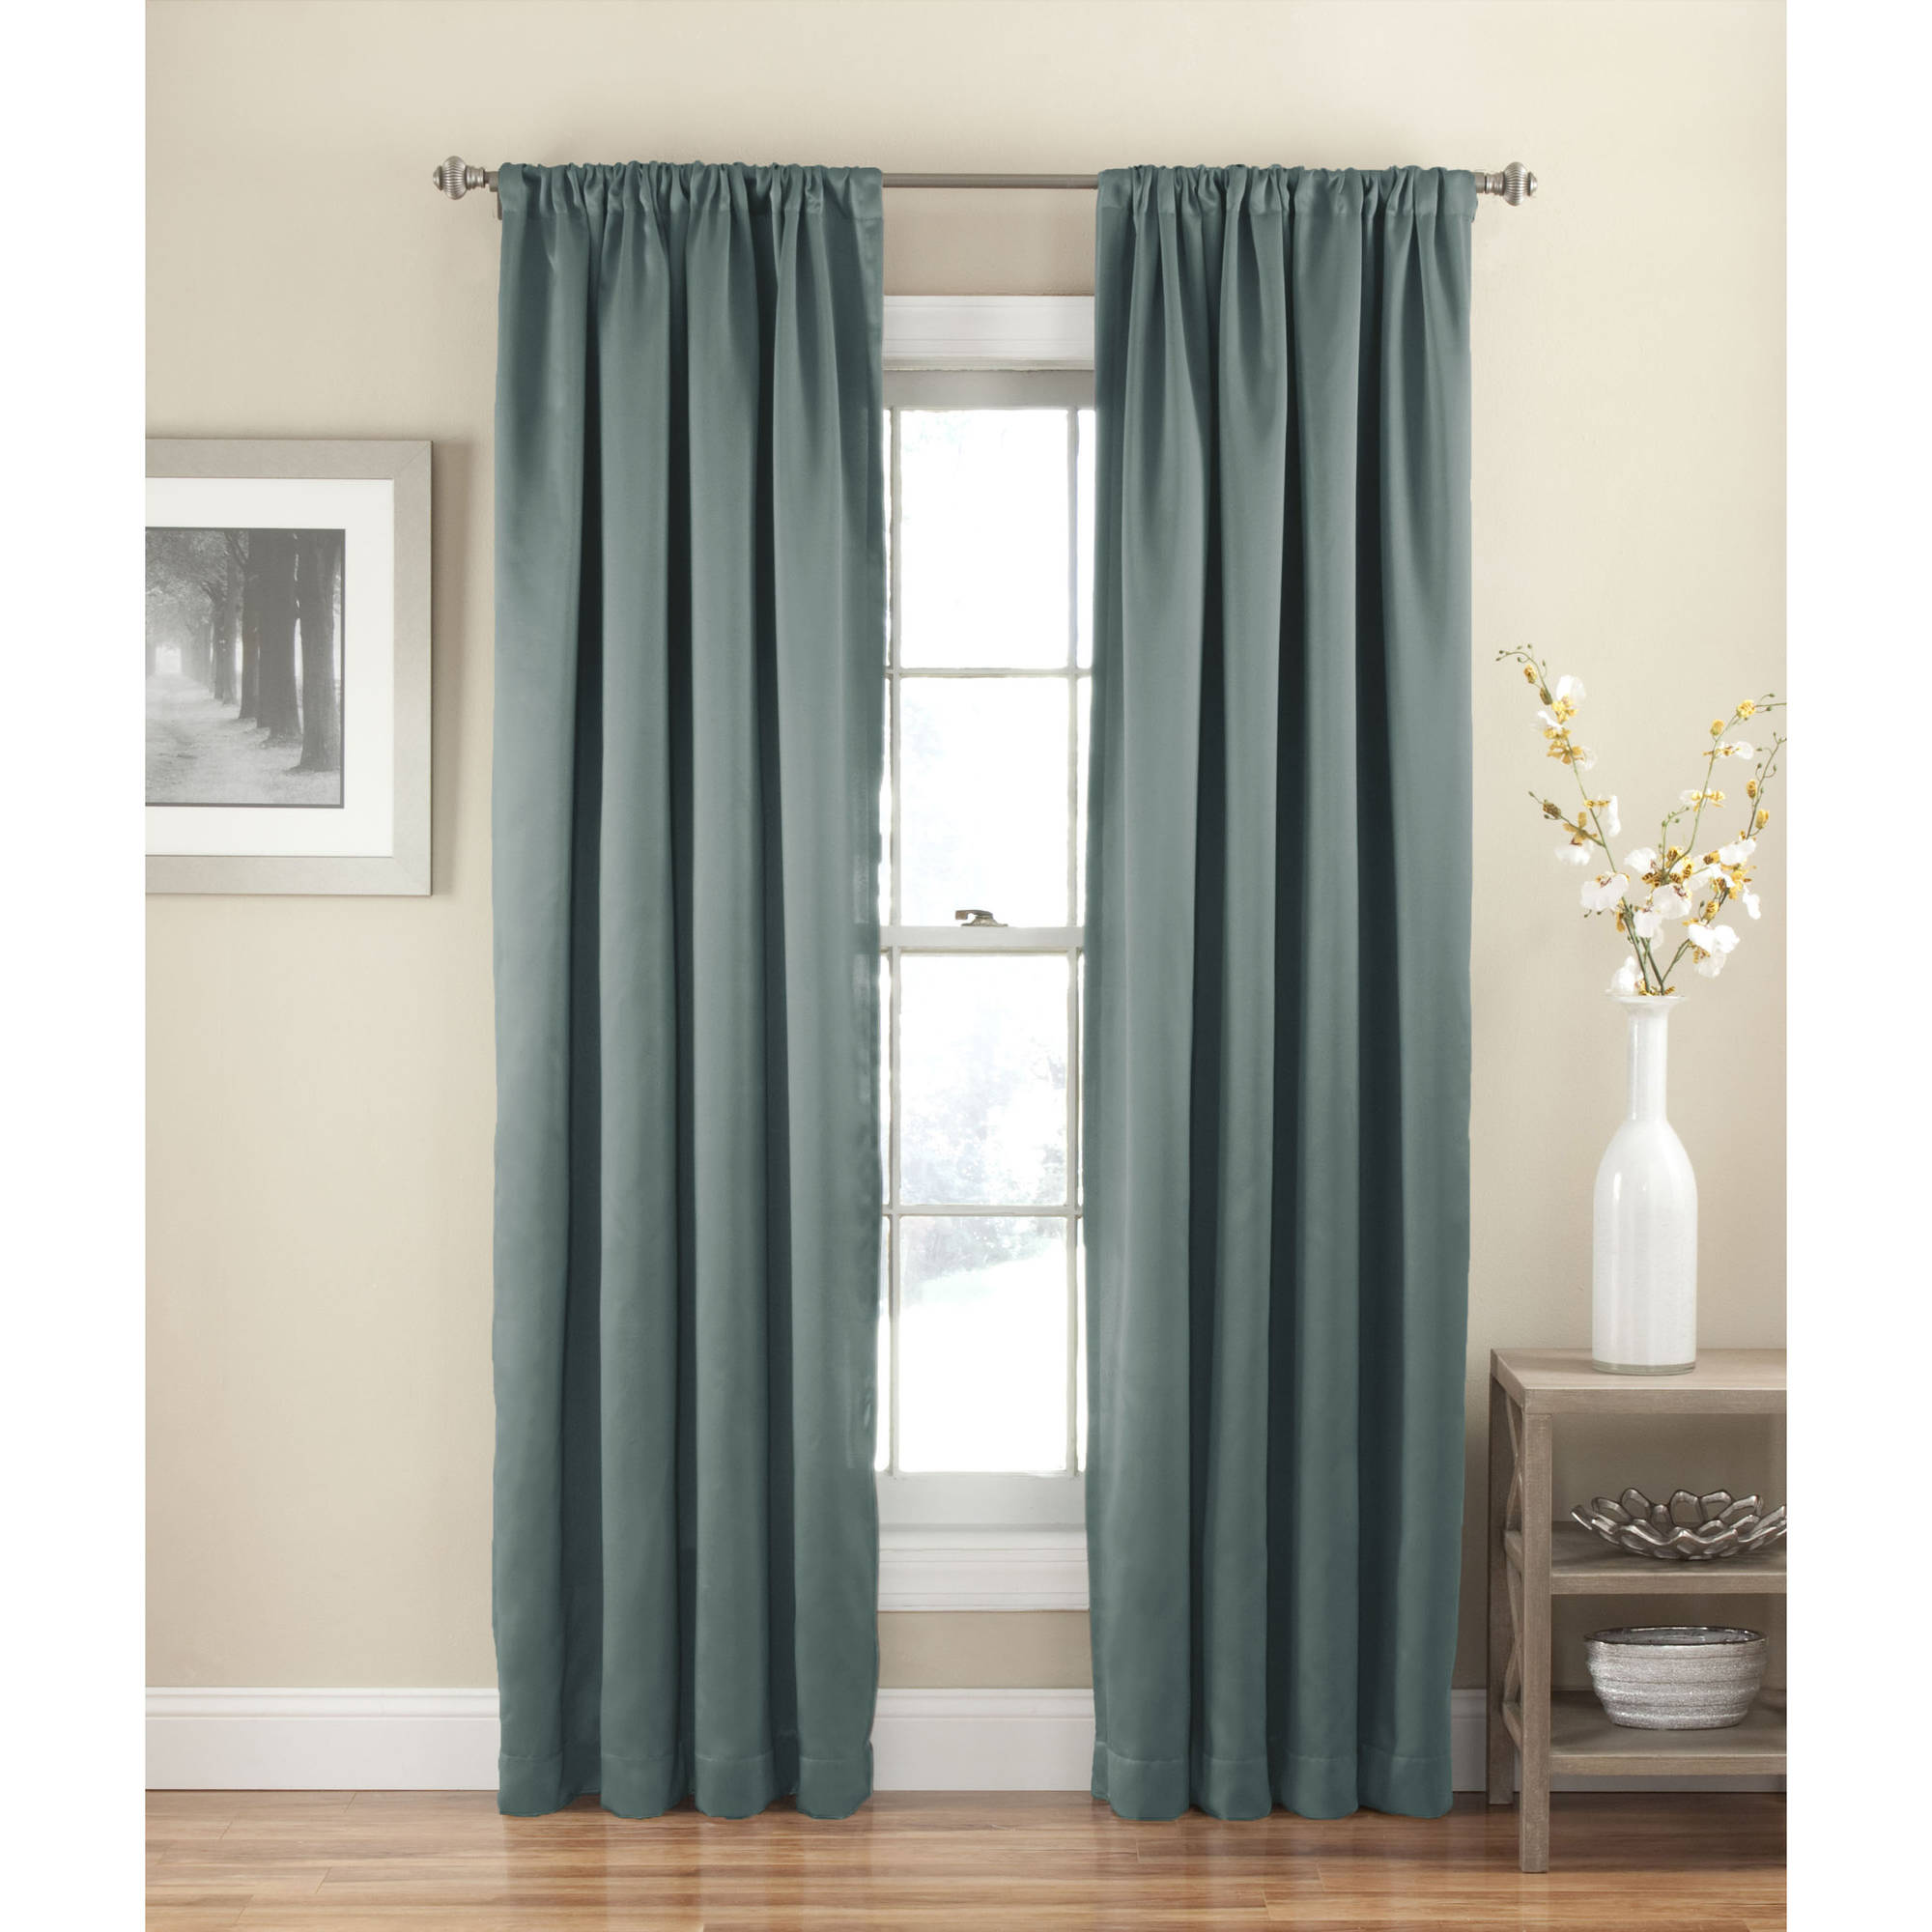 curtains room black liner white bath bed grand impressive curtain home lining living as grey plus nursery blackout style christmas rc also samara and beyond captivating decoration eclipse ideas